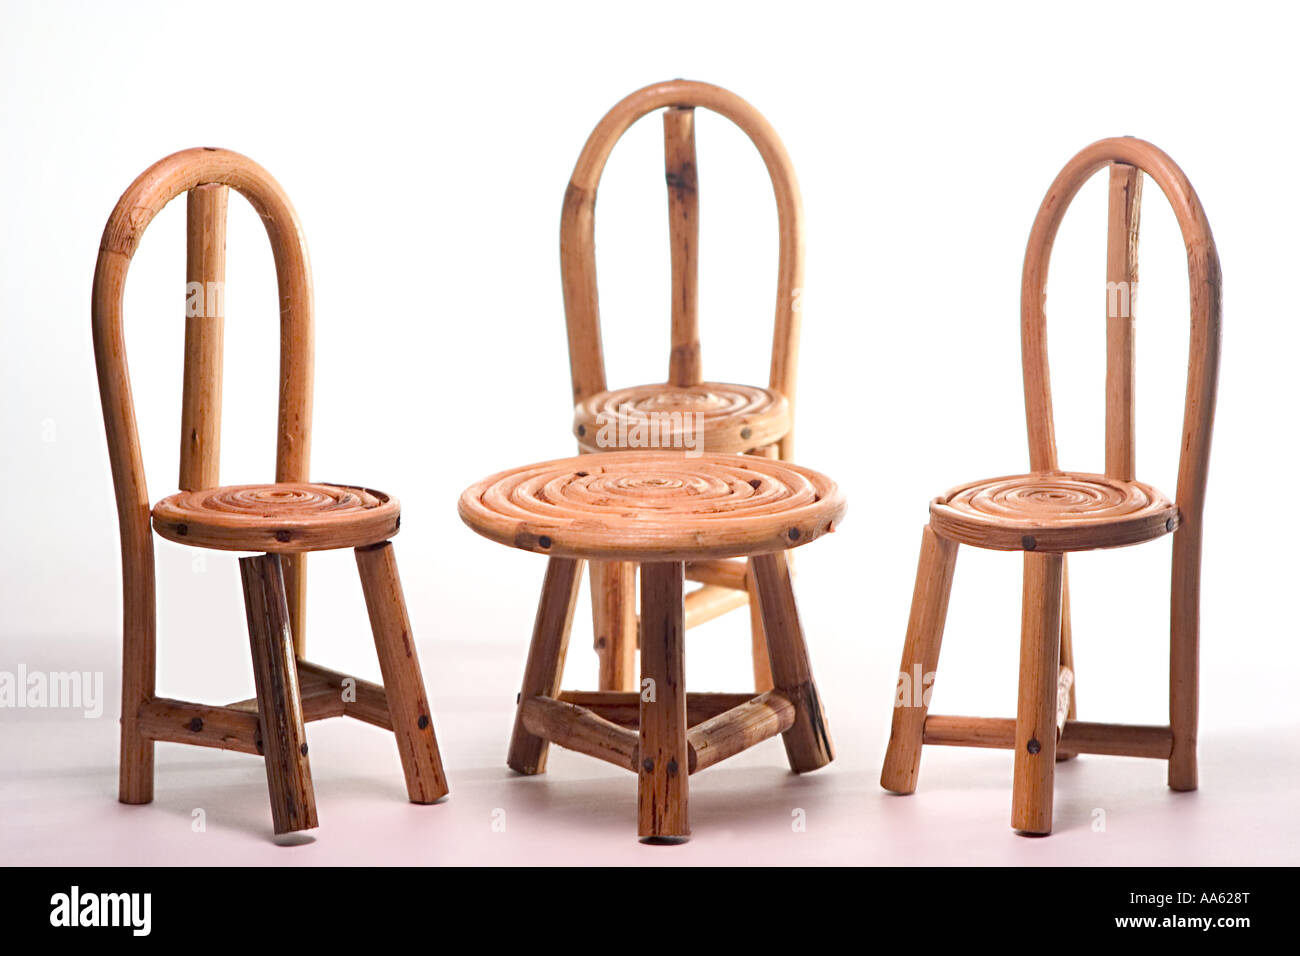 Concept Family Handicraft Three Cane Chairs And One Table Small Toy  Children Plaything Miniature